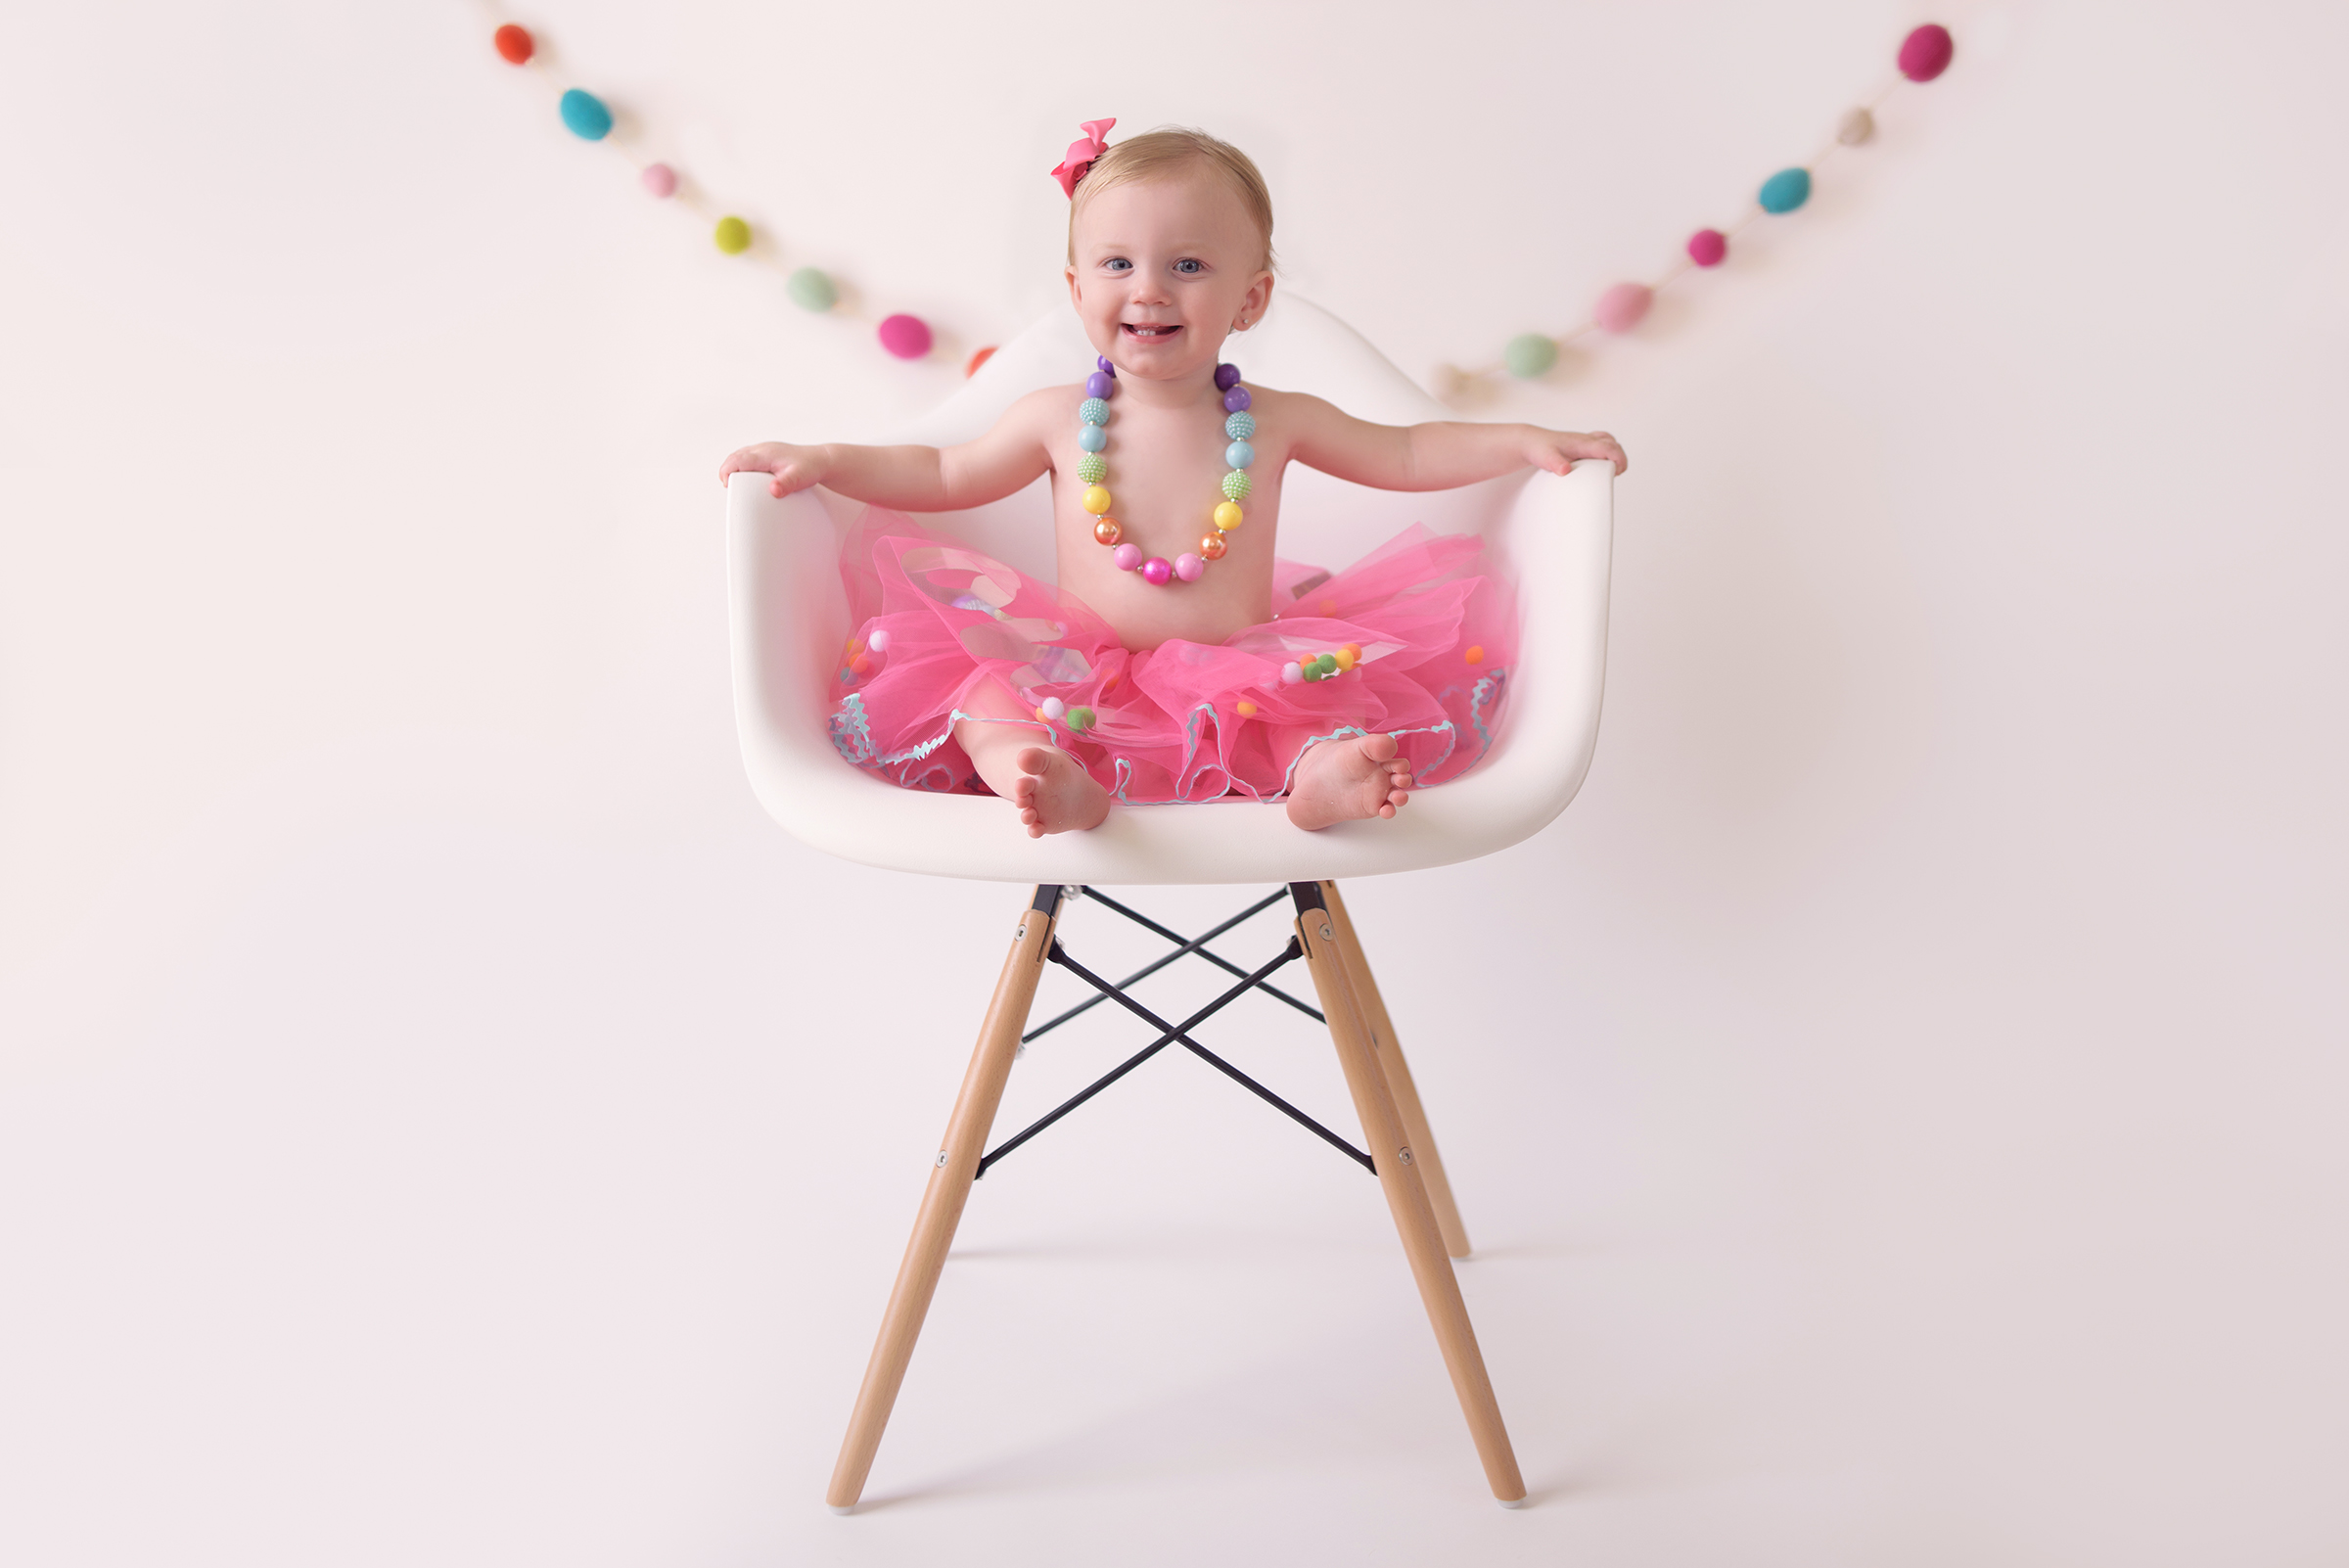 cake smash and baby portraits for one year old birthday in studio san diego, ca